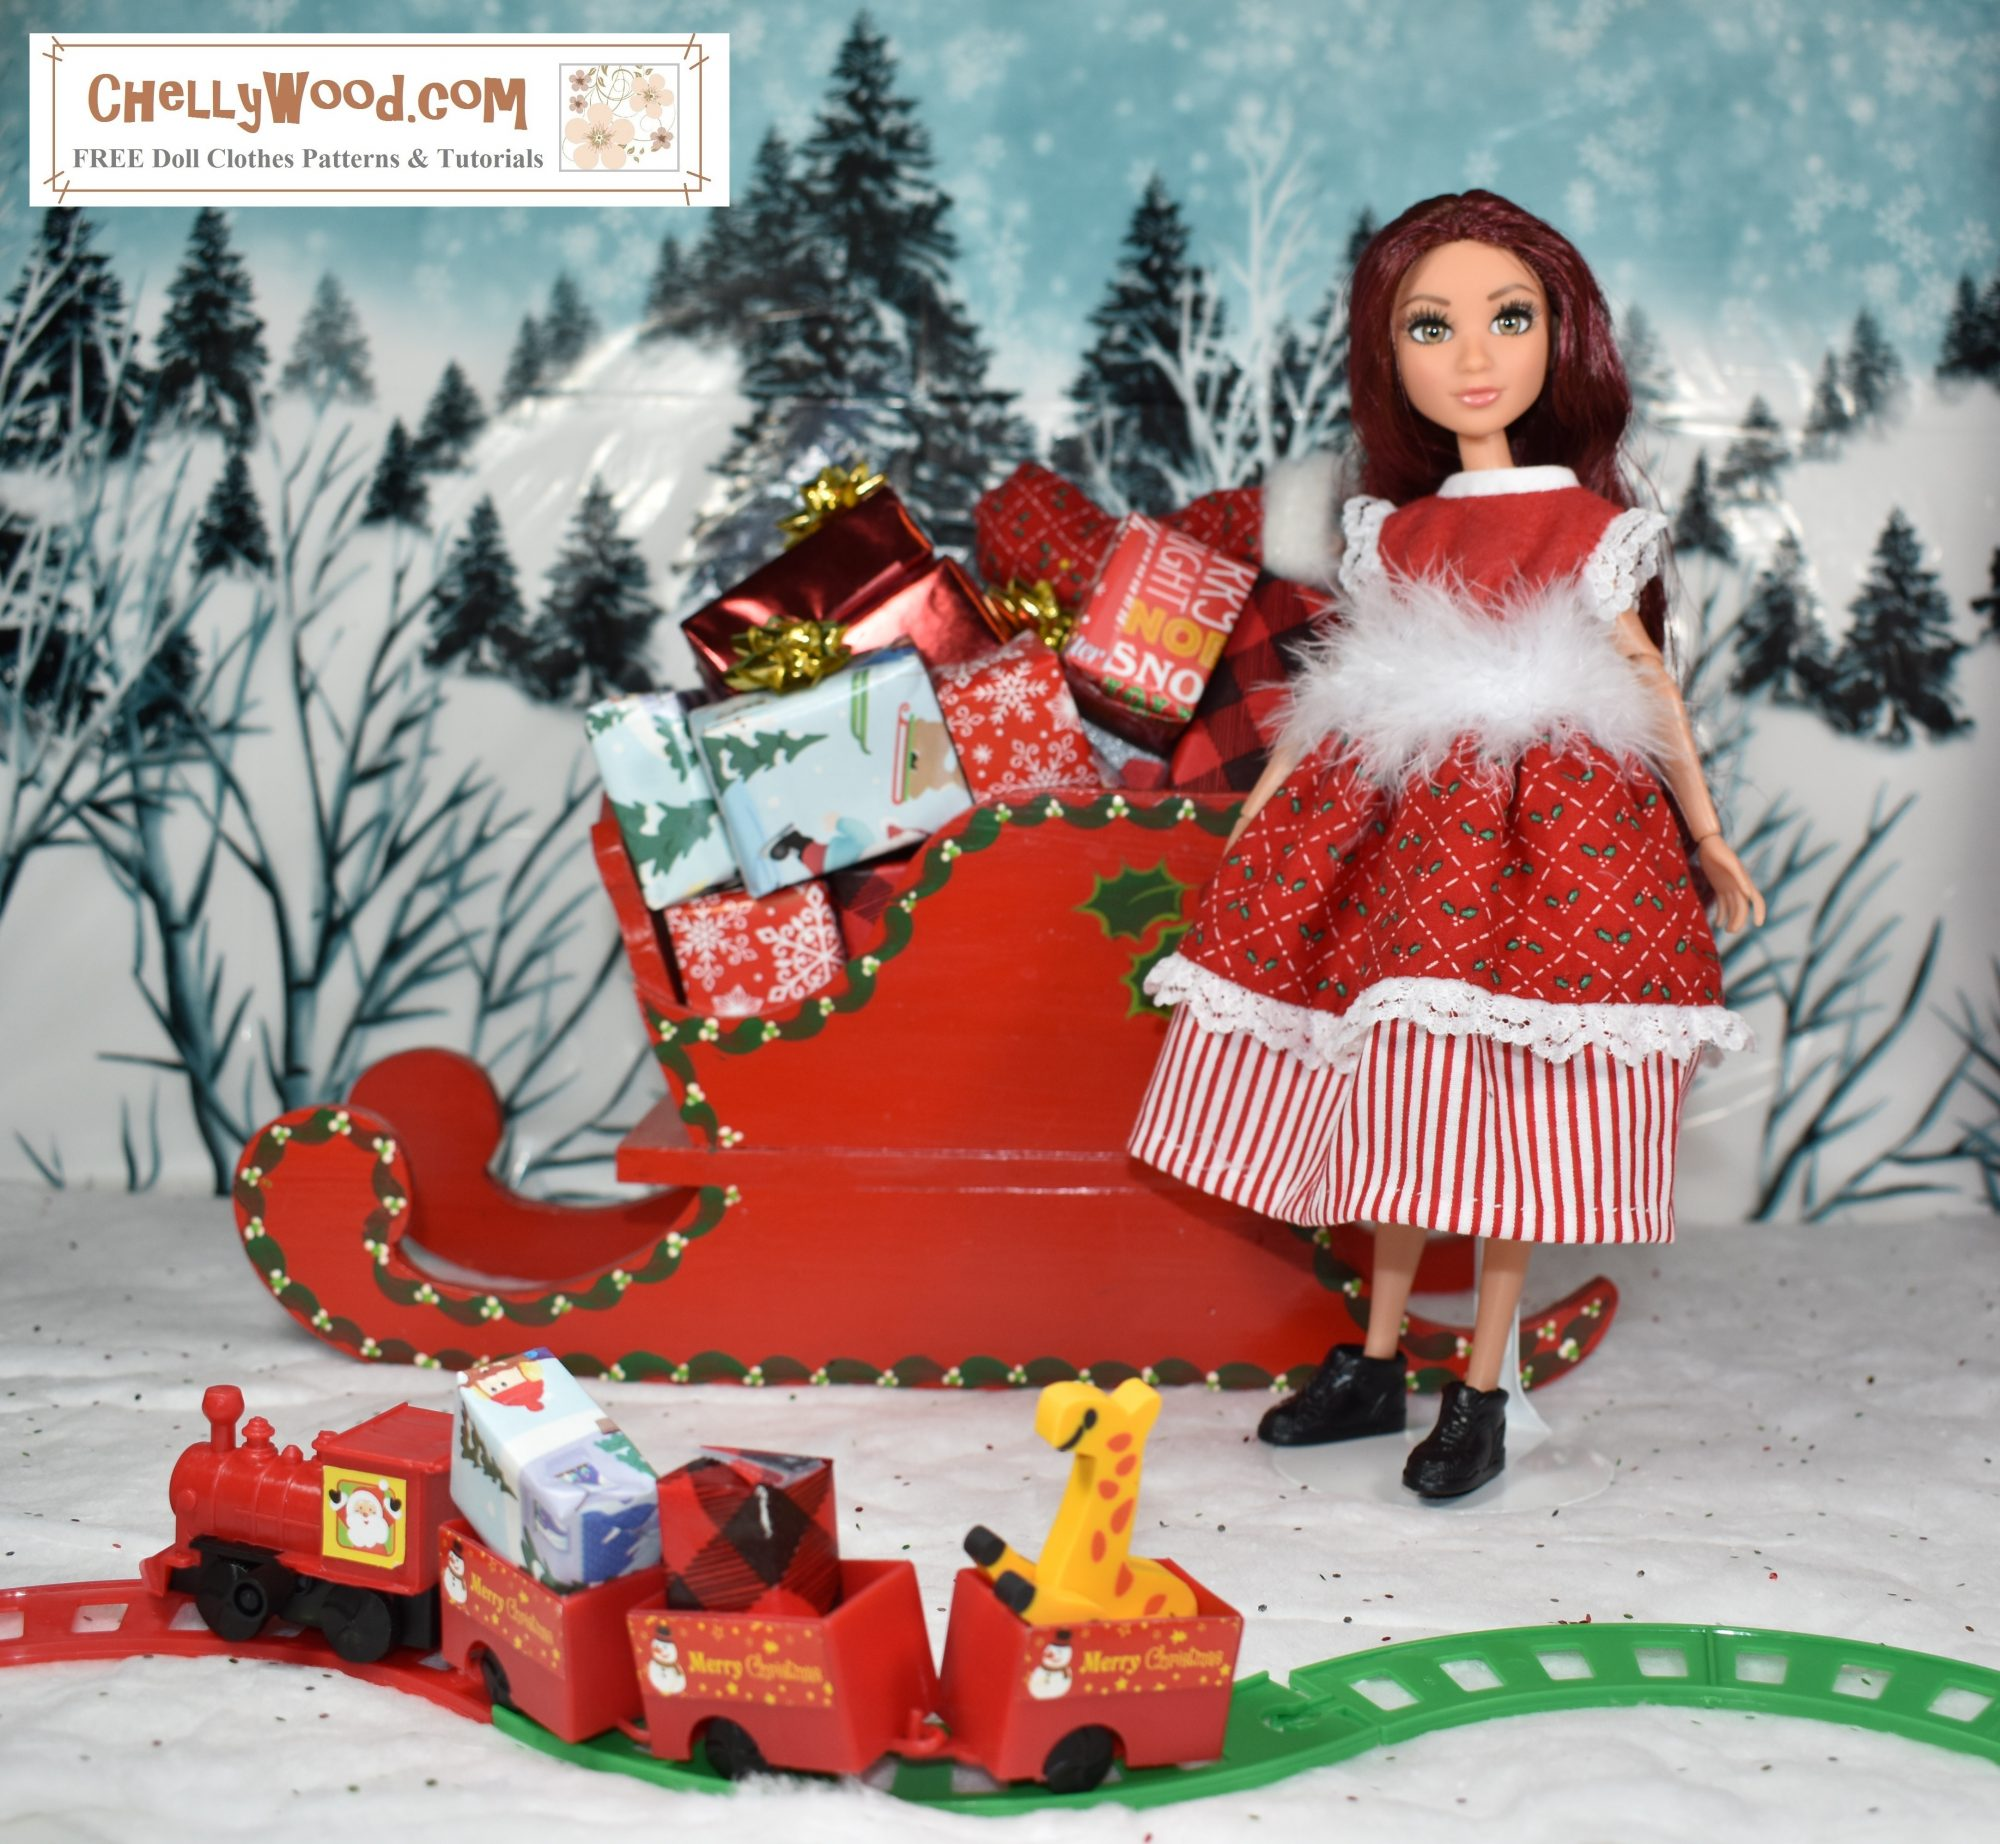 Here we see a Project MC Squared Camryn Coyle doll modeling a red Christmas dress in a North Pole diorama. Behind her is a Santa's sleigh filled with presents, and beyond that, the snowy hills are dotted with pine trees. In the foreground, there's a tiny toy train running along a little train track, delivering miniature presents. The doll's dress is made of red cotton fabric with a red and white striped cotton petticoat. Her belt is made of white fur, and her sleeves are lacy. She wears little black elf boots.